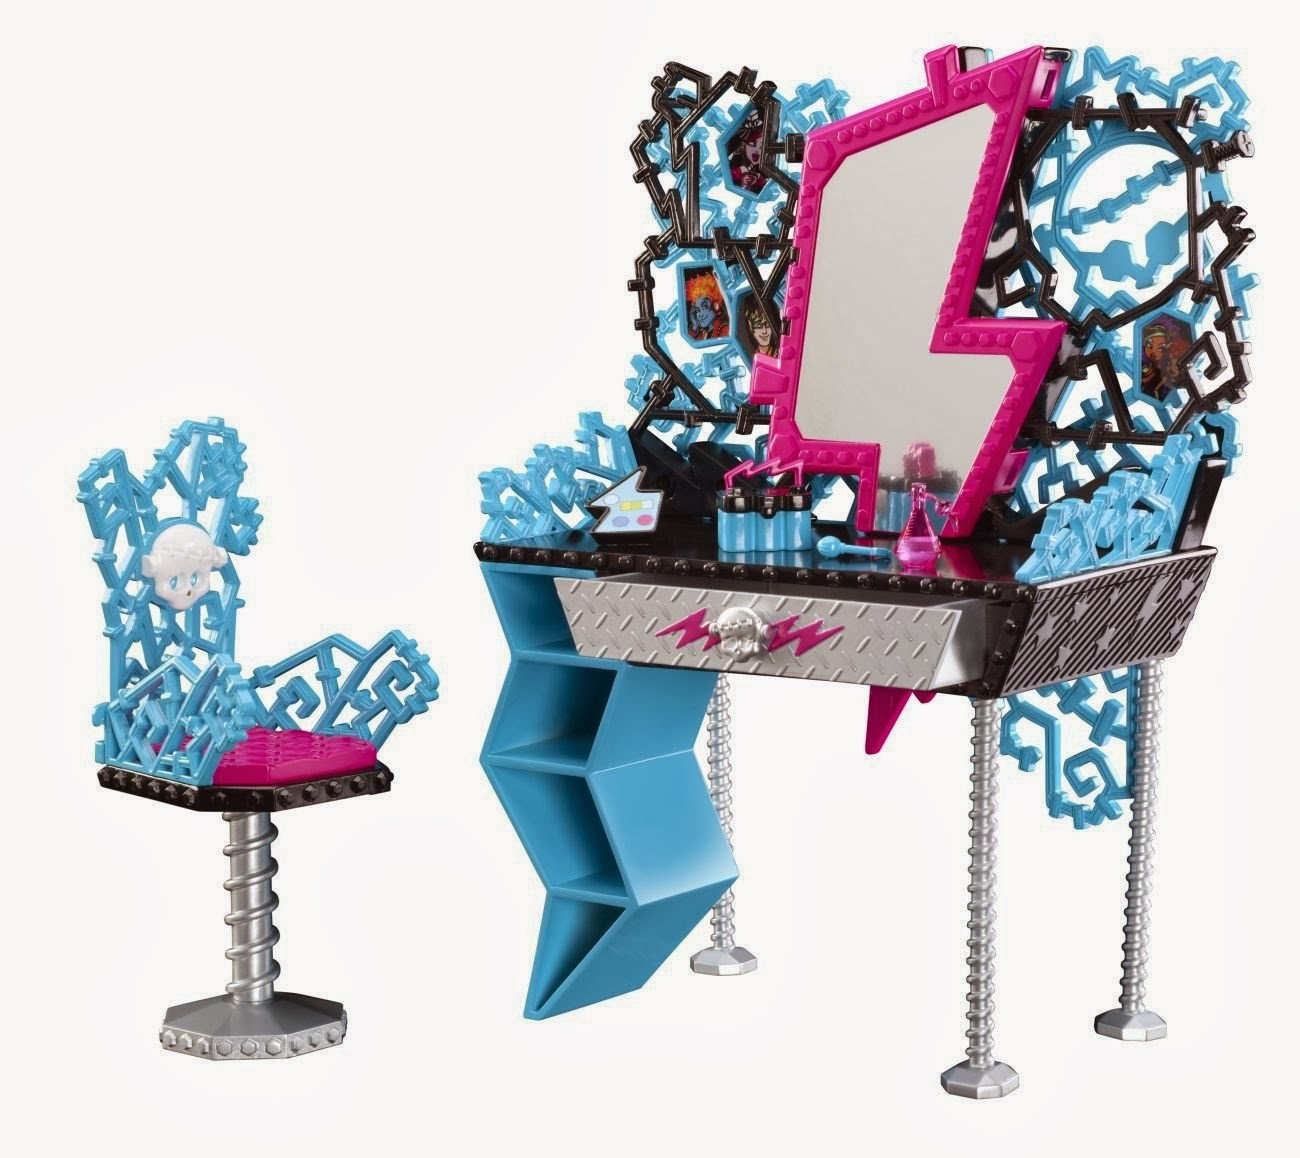 Mom Of 2 Dancers Reviews Monster High Doll Furniture Sales Amazon